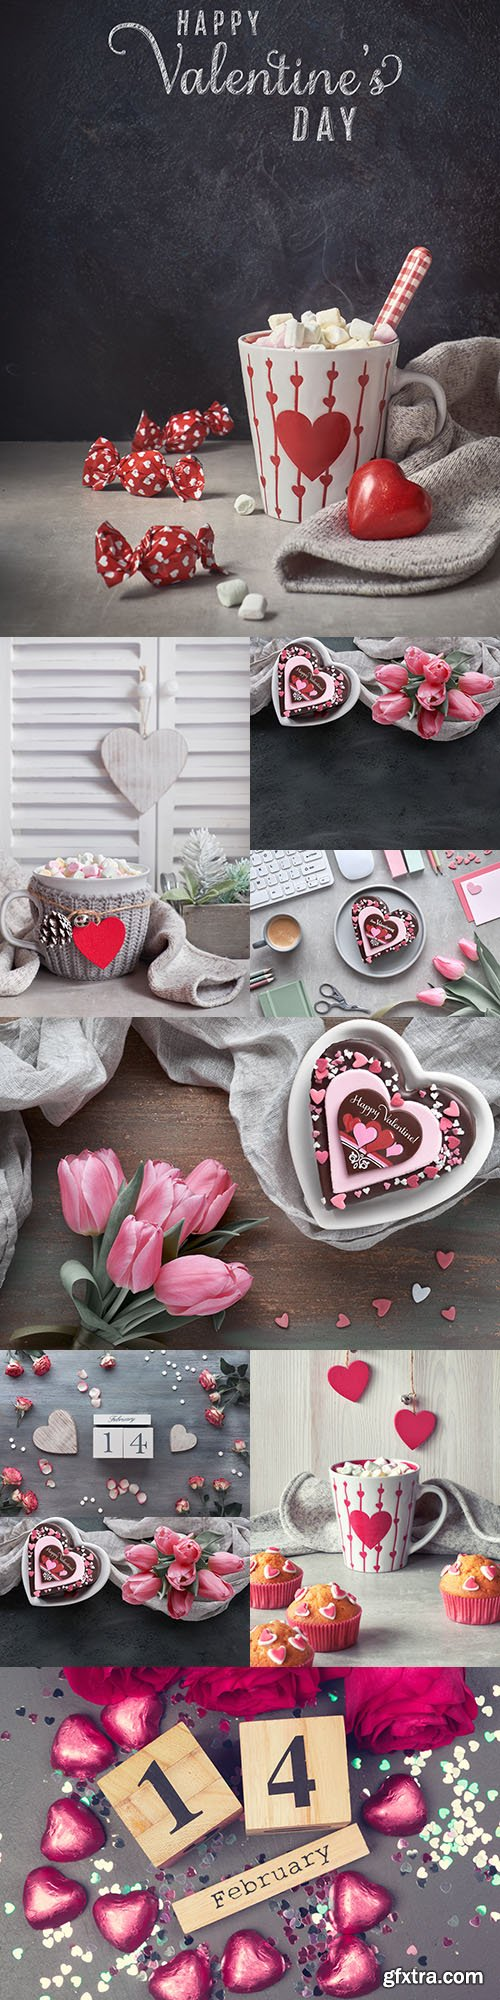 Valentine's Day romantic decorative composition